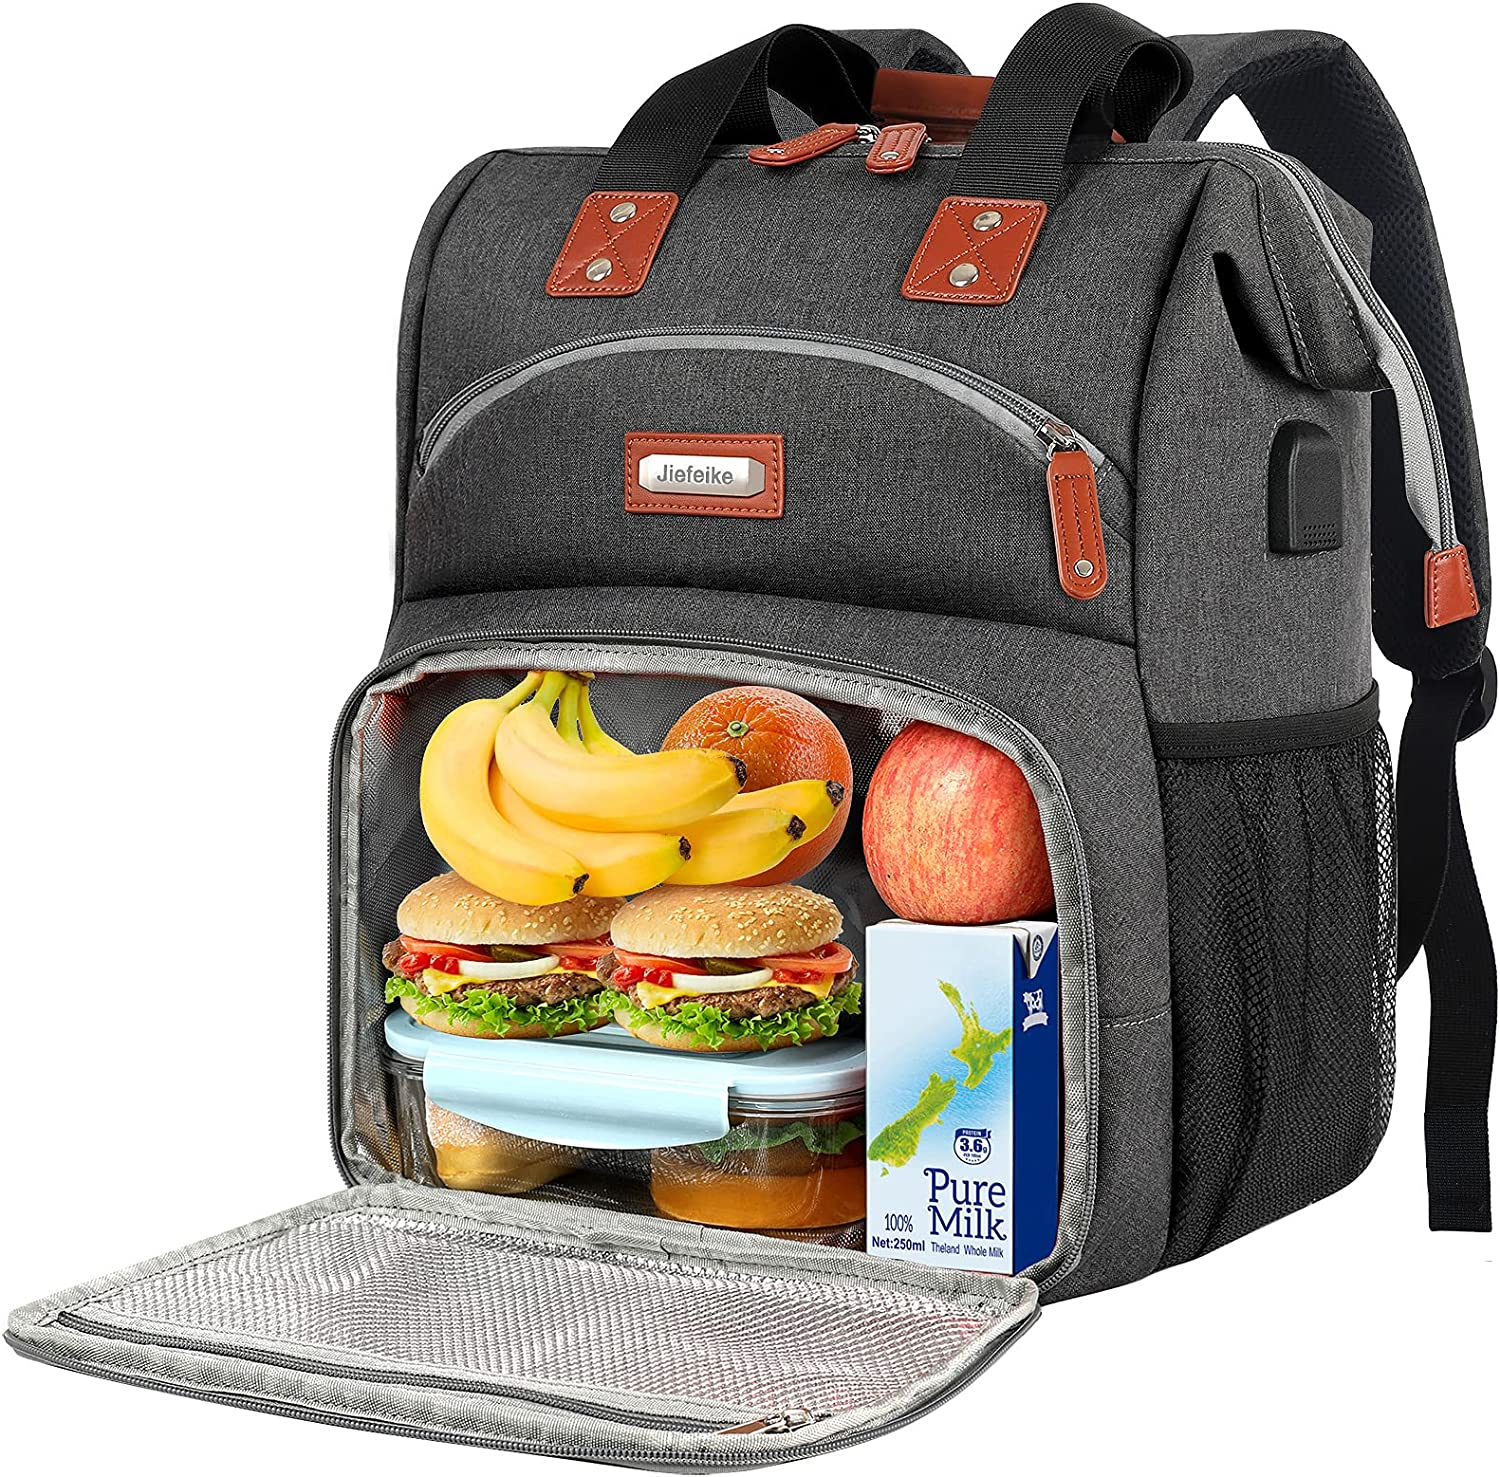 Lunch Backpack for Women, Insulated Cooler Compartment Food Bags, Men Work College Student Waterproof Reusable Lunch Box with USB Charging Port, RFID Anti Theft Large Backpack Fit 15.6 inch Laptop